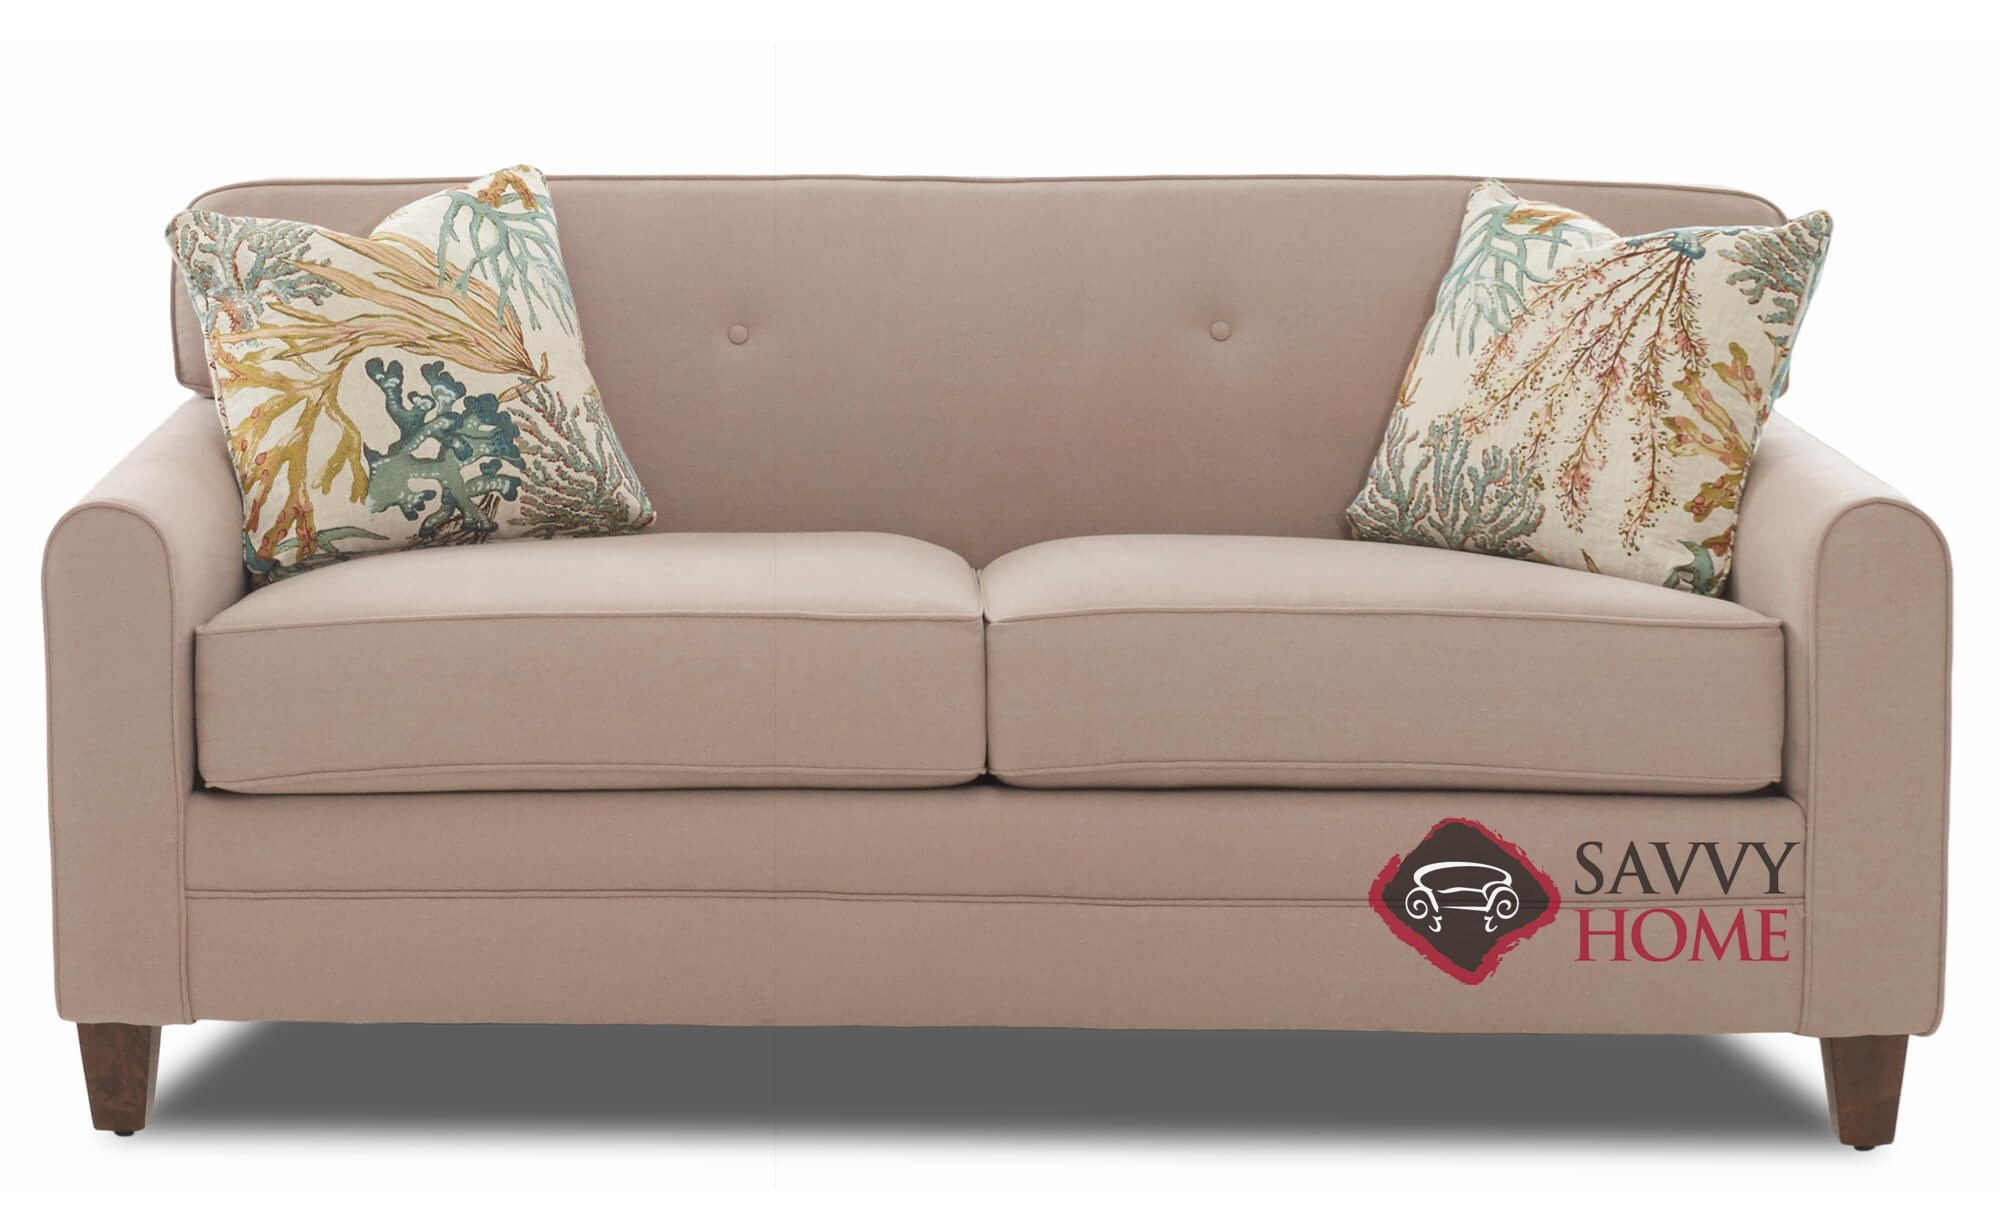 Cheap Sofa Beds Perth Perth By Savvy Fabric Sleeper Sofas Full By Savvy Is Fully